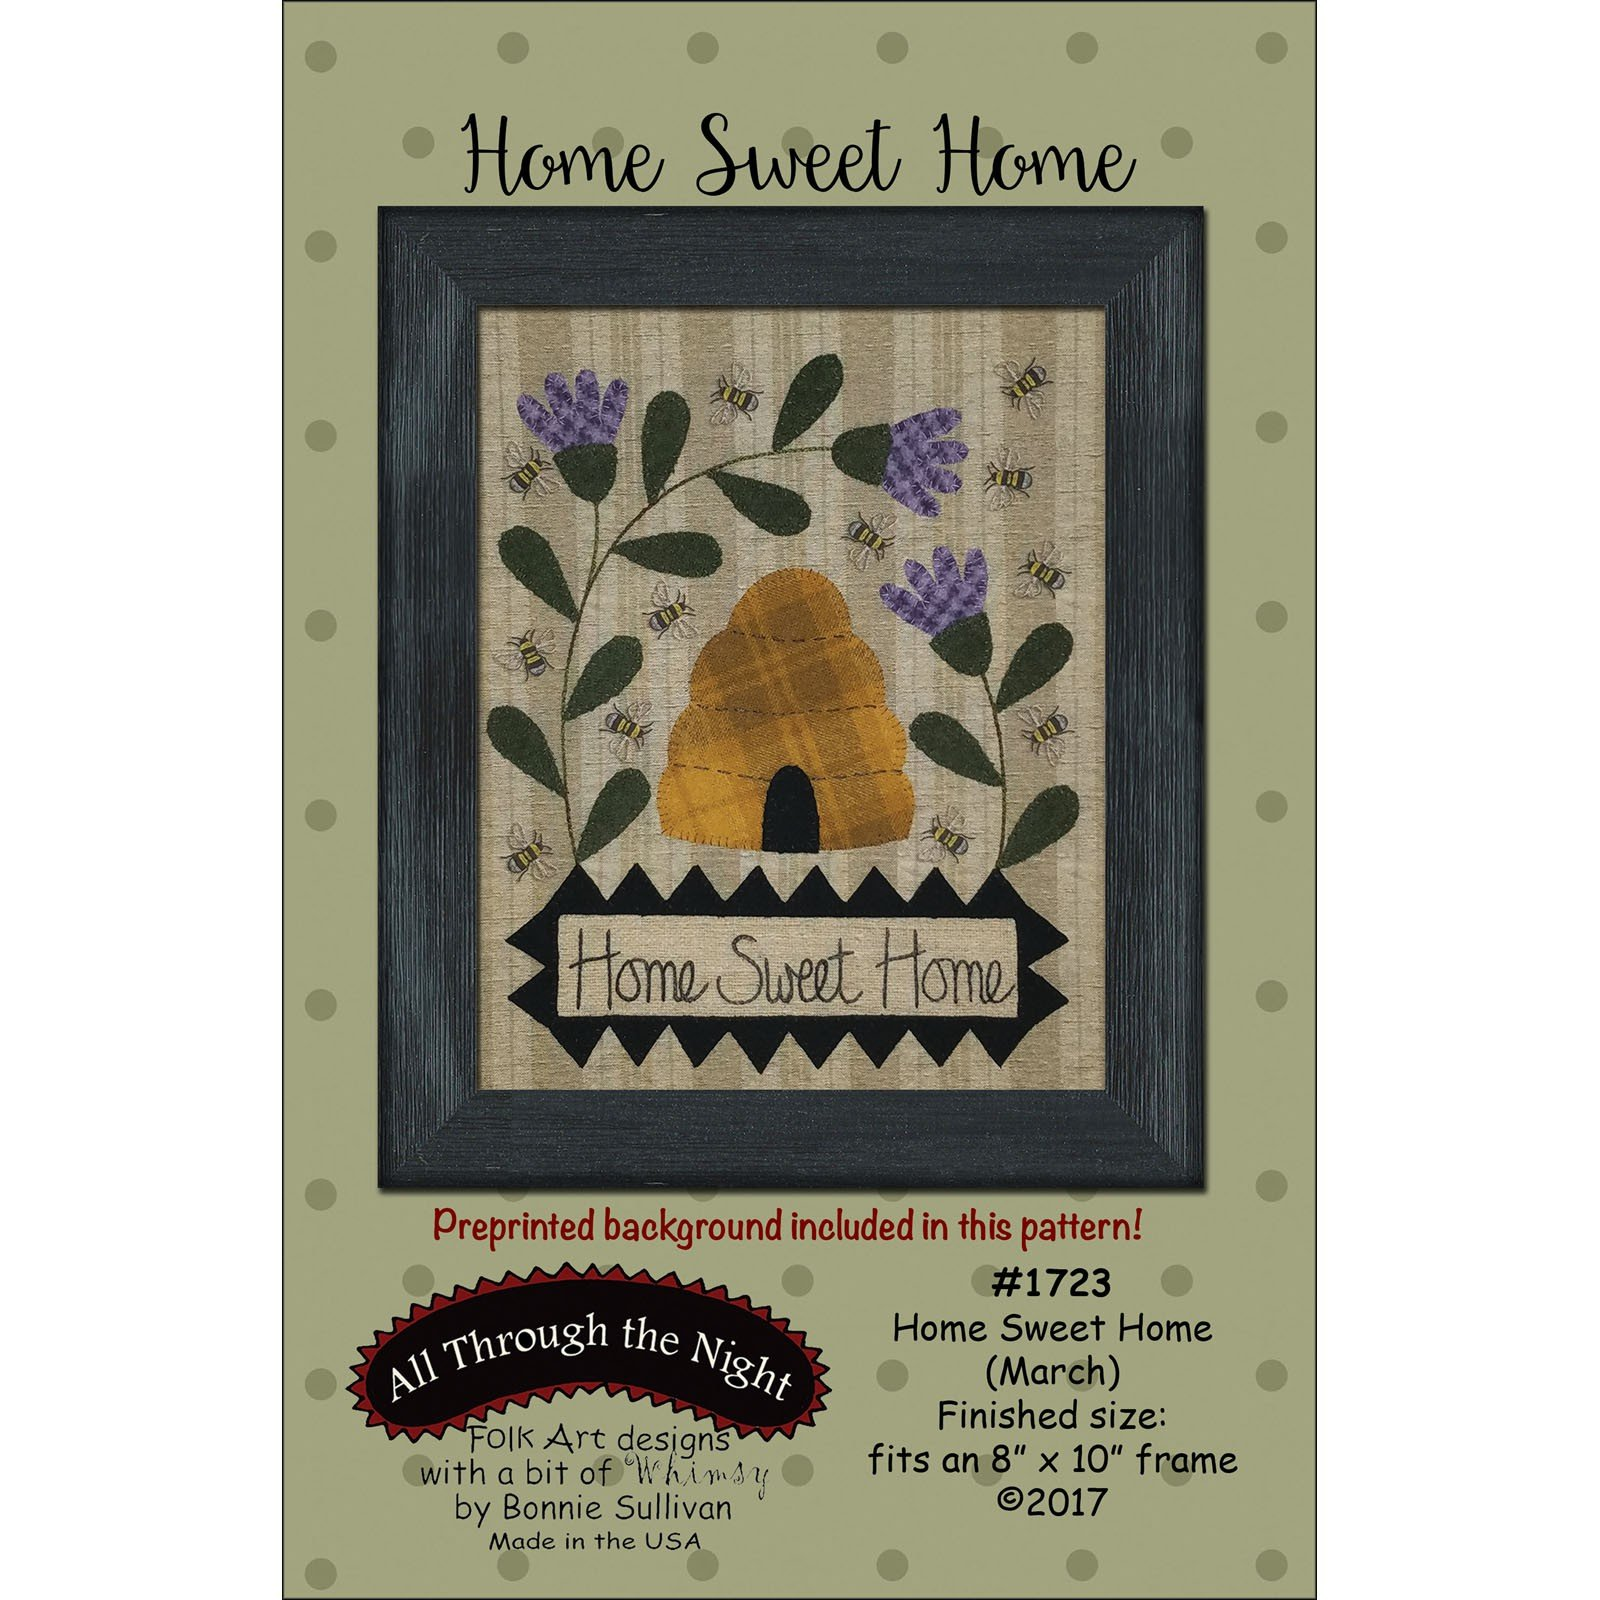 Home Sweet Home - Embroidery Kit - Finished Size 8 X 10